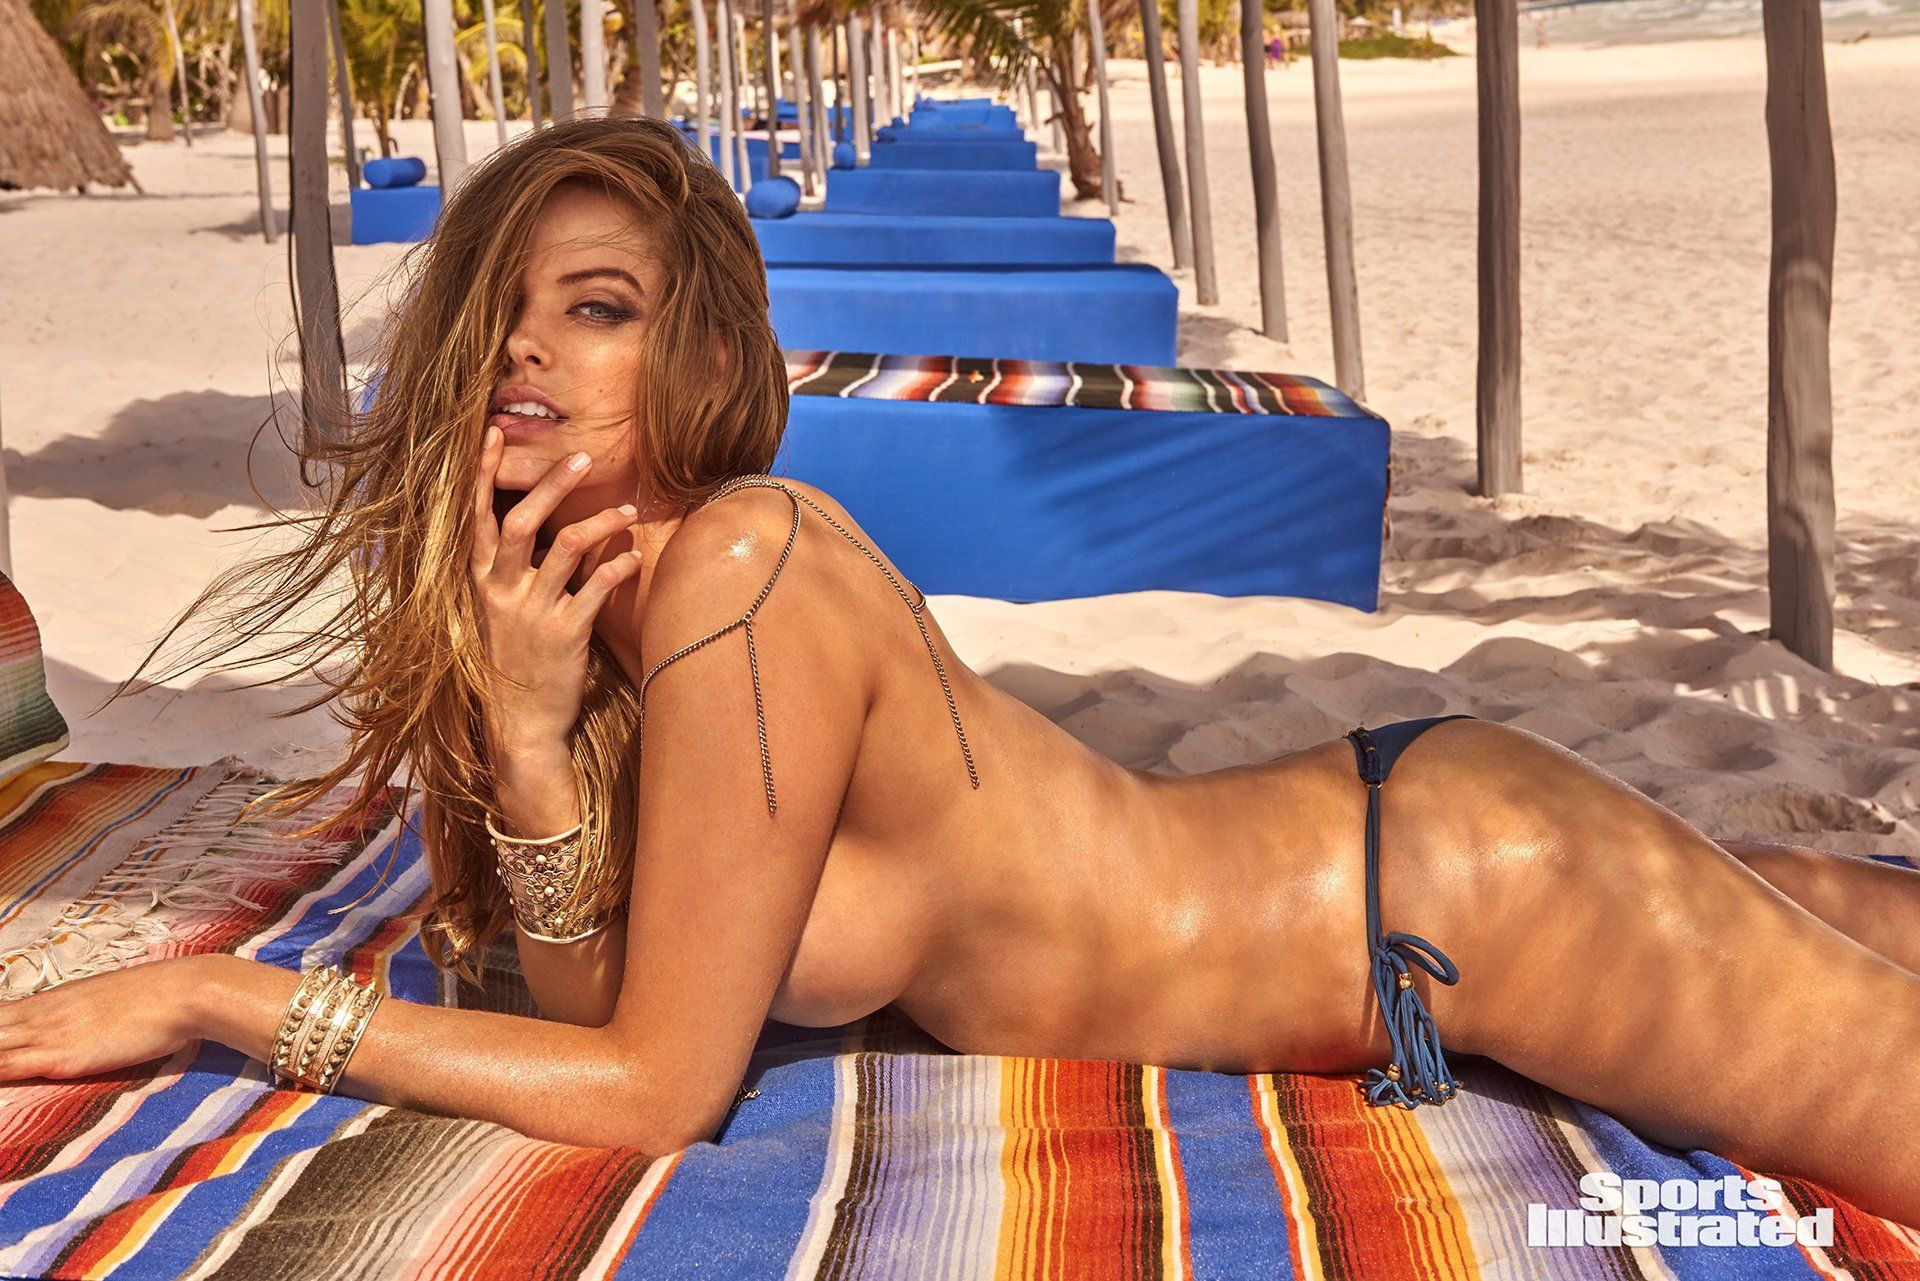 52e748d0fa4a4 Robyn Lawley was photographed by Ruven Afanador in Mexico. Swimsuit by ViX  Paula Hermanny.